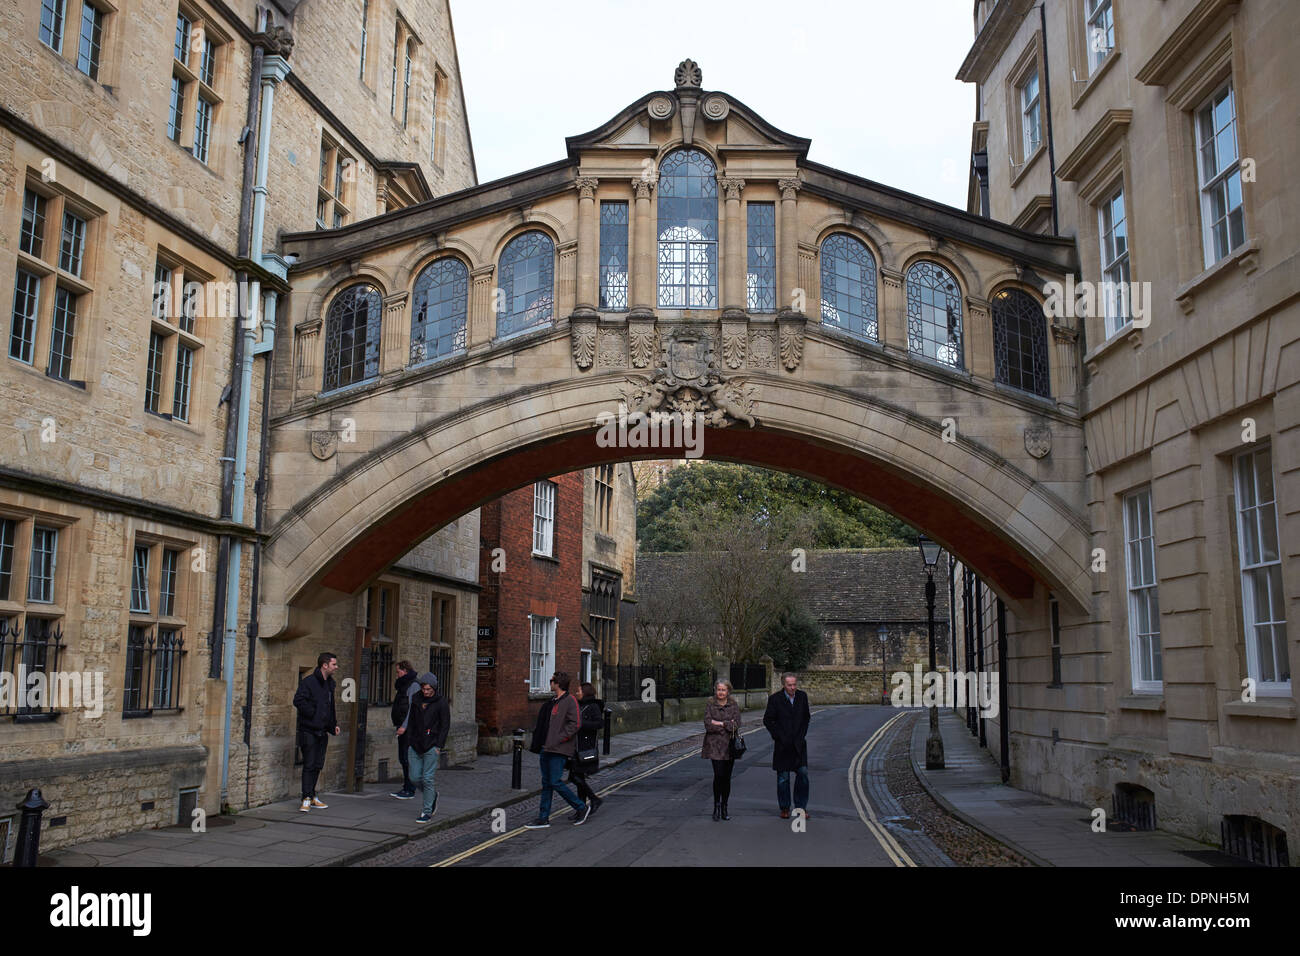 The Bridge of Sighs in Oxford city centre UK Stock Photo